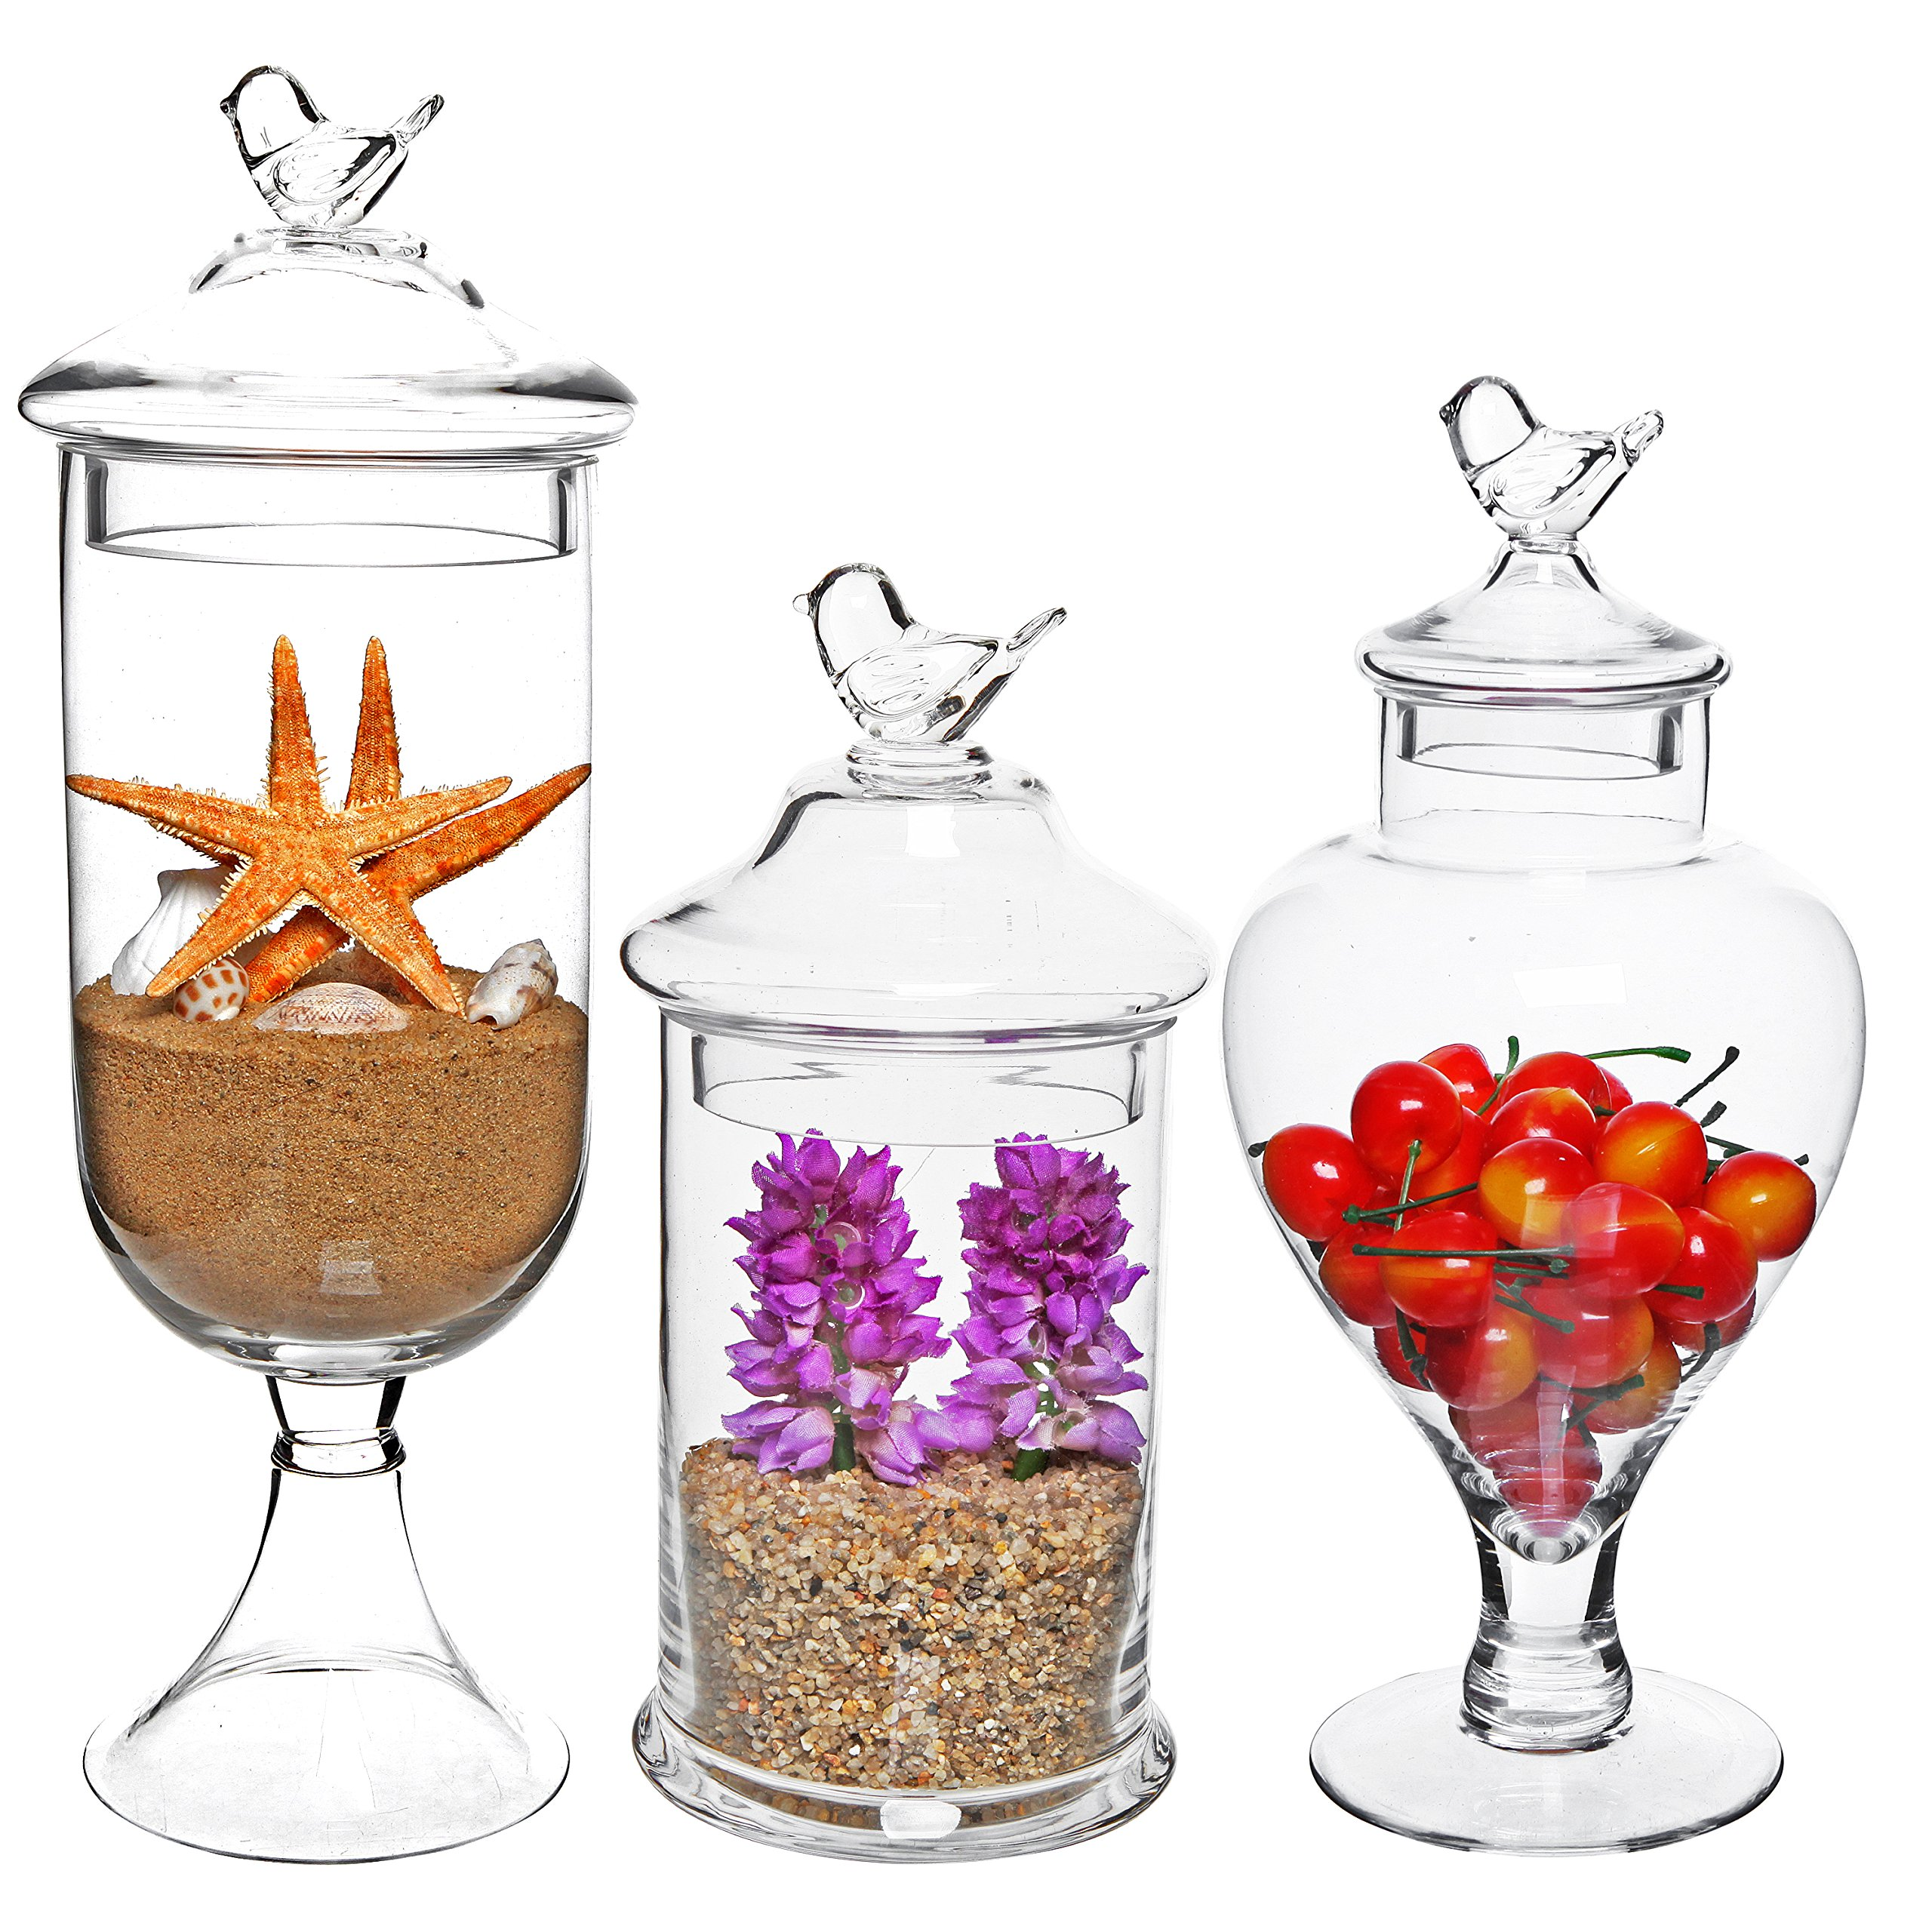 MyGift Set of 3 Bird Top Handle Design Clear Glass Apothecary Jar Centerpieces/Food Storage Containers by MyGift